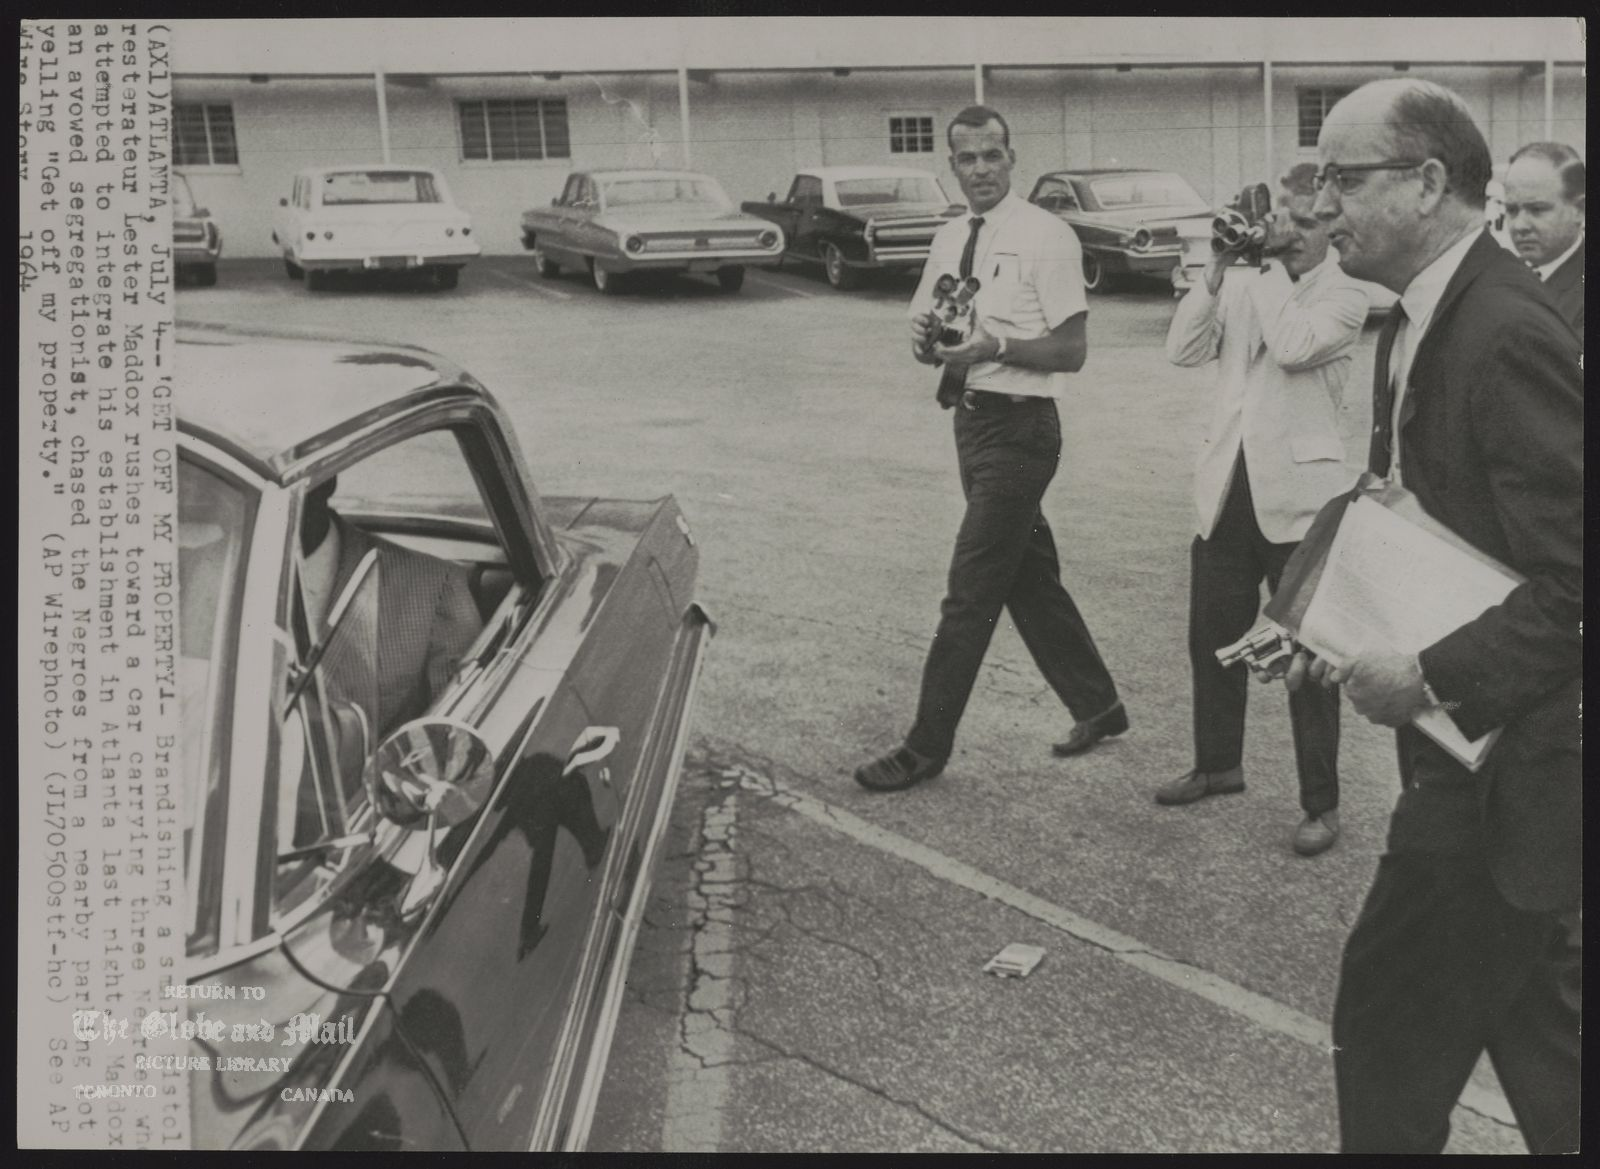 INTEGRATION (AX1) ATLANTA. July 4--'GET MY PROPERTY' --Brandishing a small pistol restauranteur Lester Maddox rushes toward a car carrying three Negroes who attempted to integrate his establishment in Atlanta last night. Maddox, an avowed segregationist, chased the Negroes from a nearby parking lot yelling